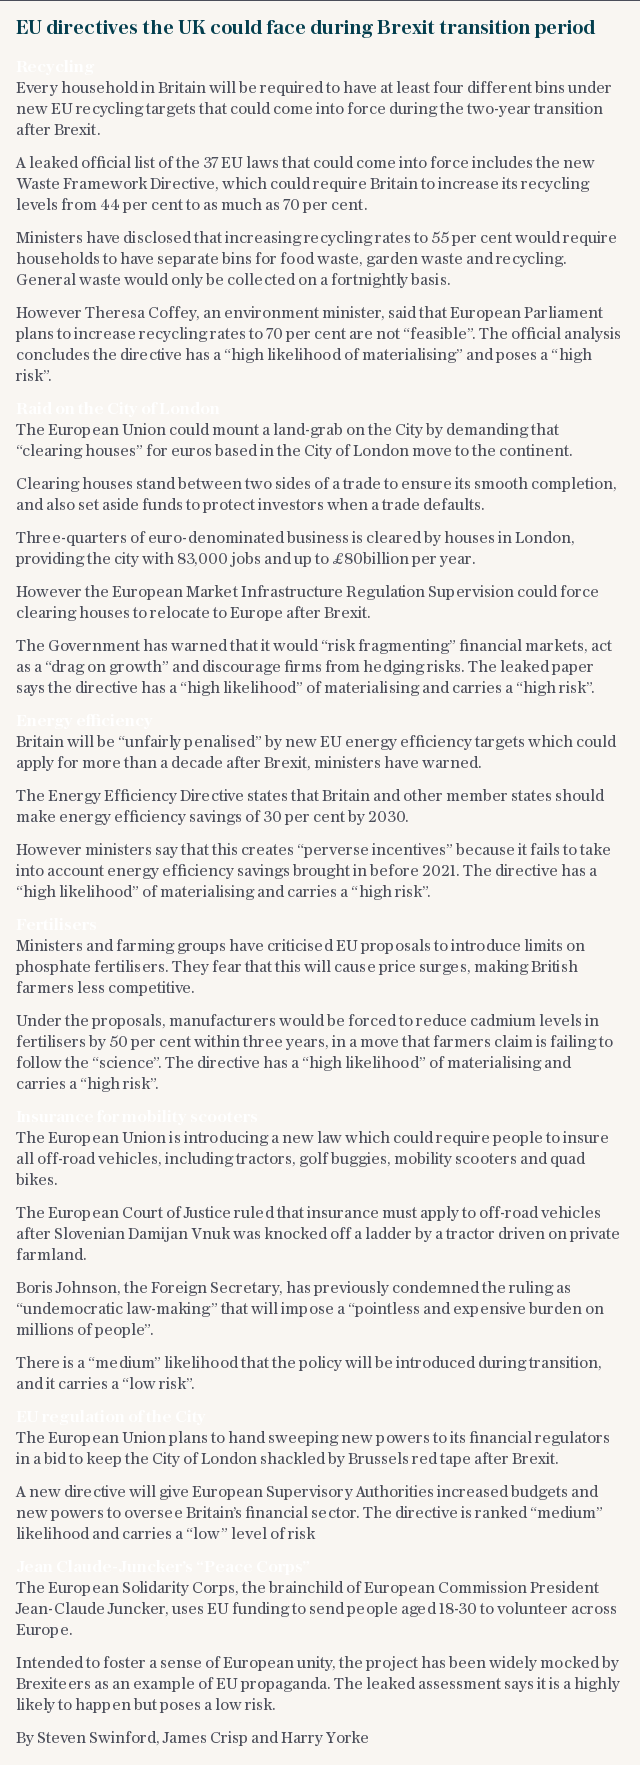 EU directives the UK could face during Brexit transition period